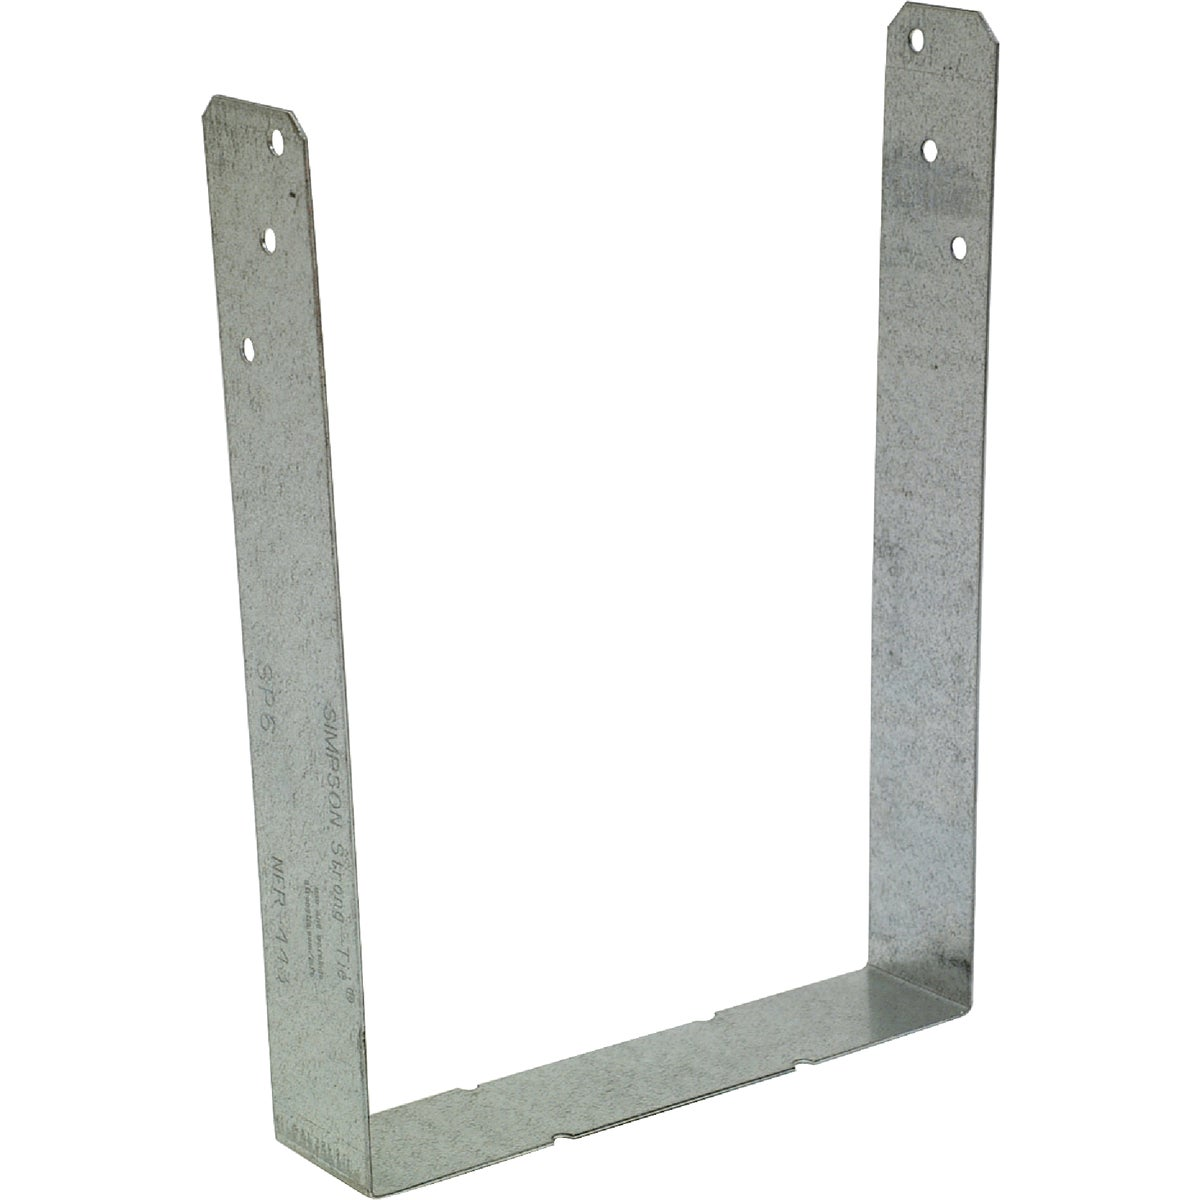 STUD PLATE - SP6 by Simpson Strong Tie